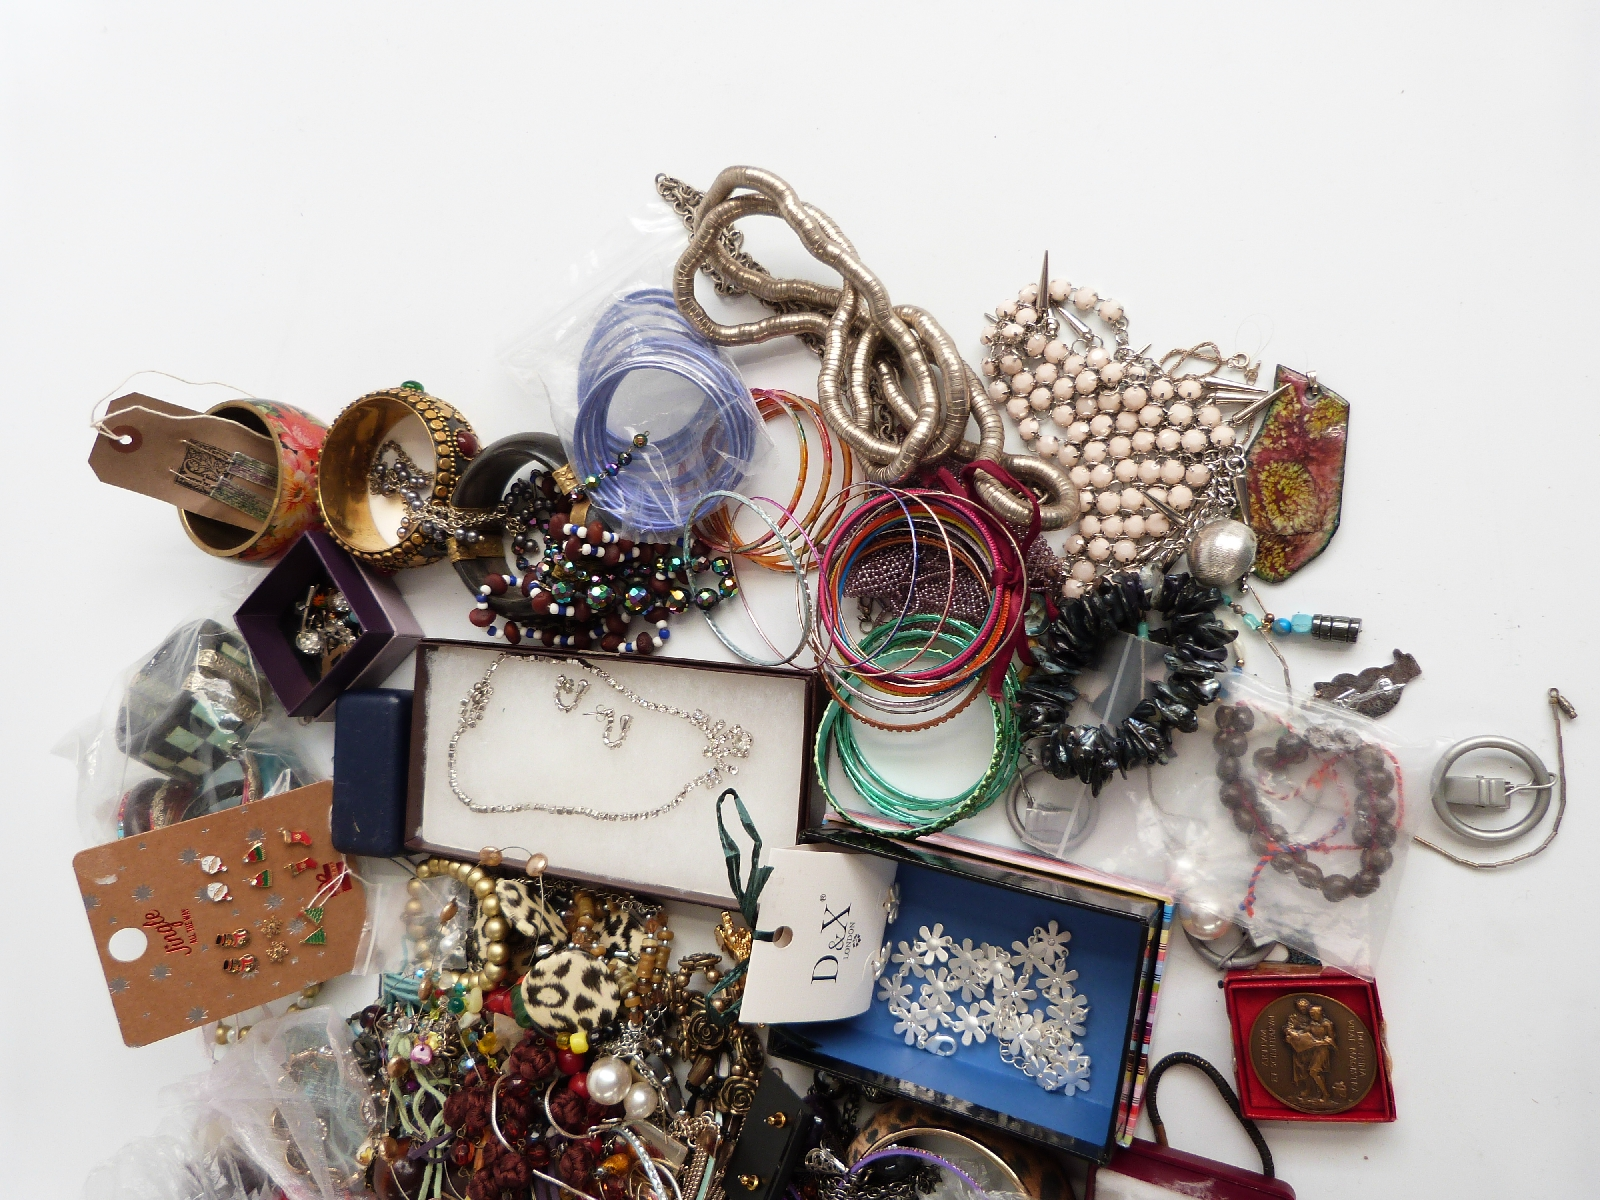 Lot 22 - A collection of jewellery including costume jewellery, silver earrings, glass pendant, agate